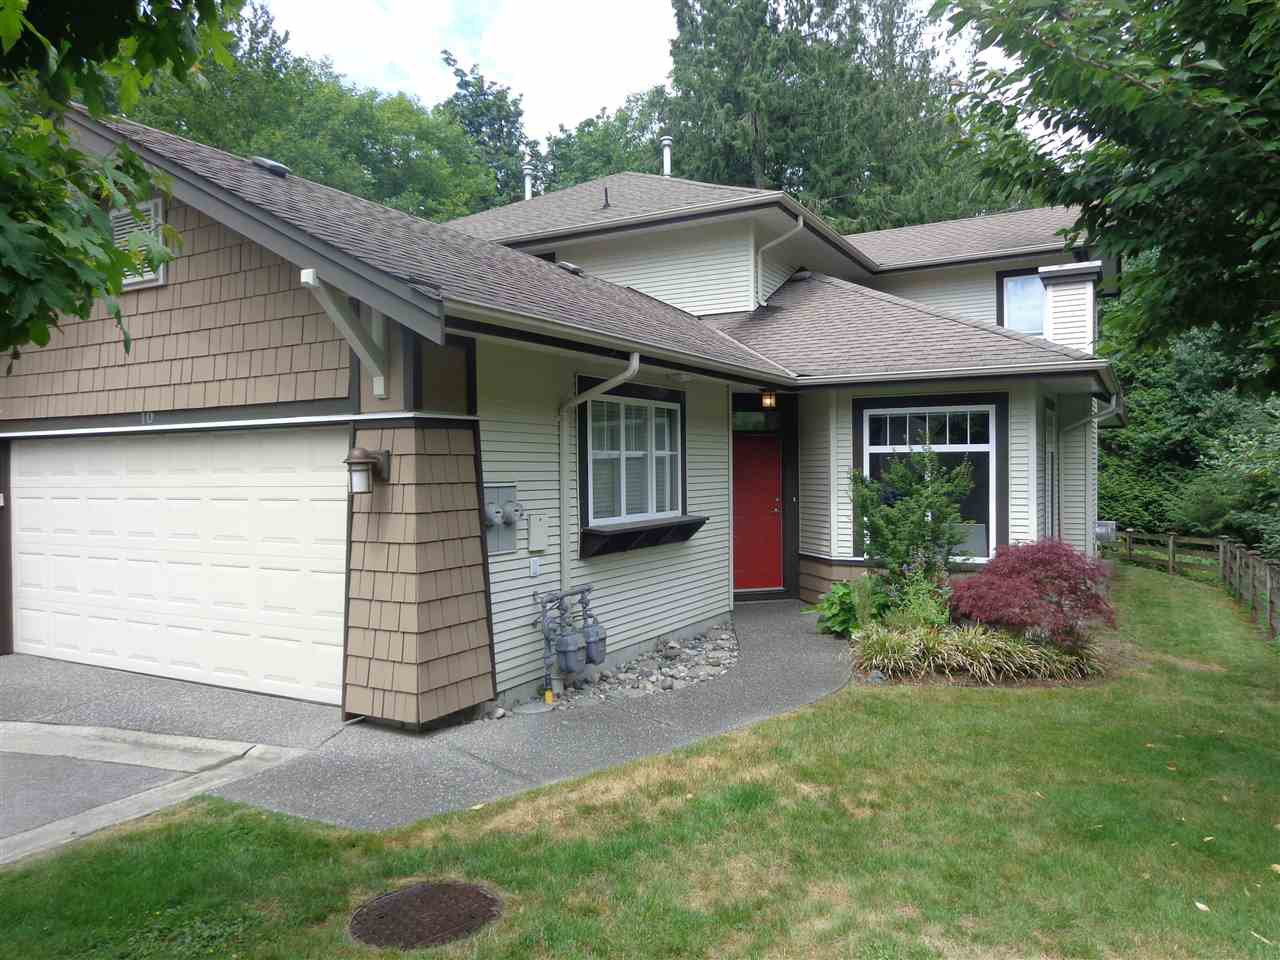 """Photo 2: Photos: 10 8588 168A Street in Surrey: Fleetwood Tynehead Townhouse for sale in """"The Brookstone"""" : MLS®# R2384013"""